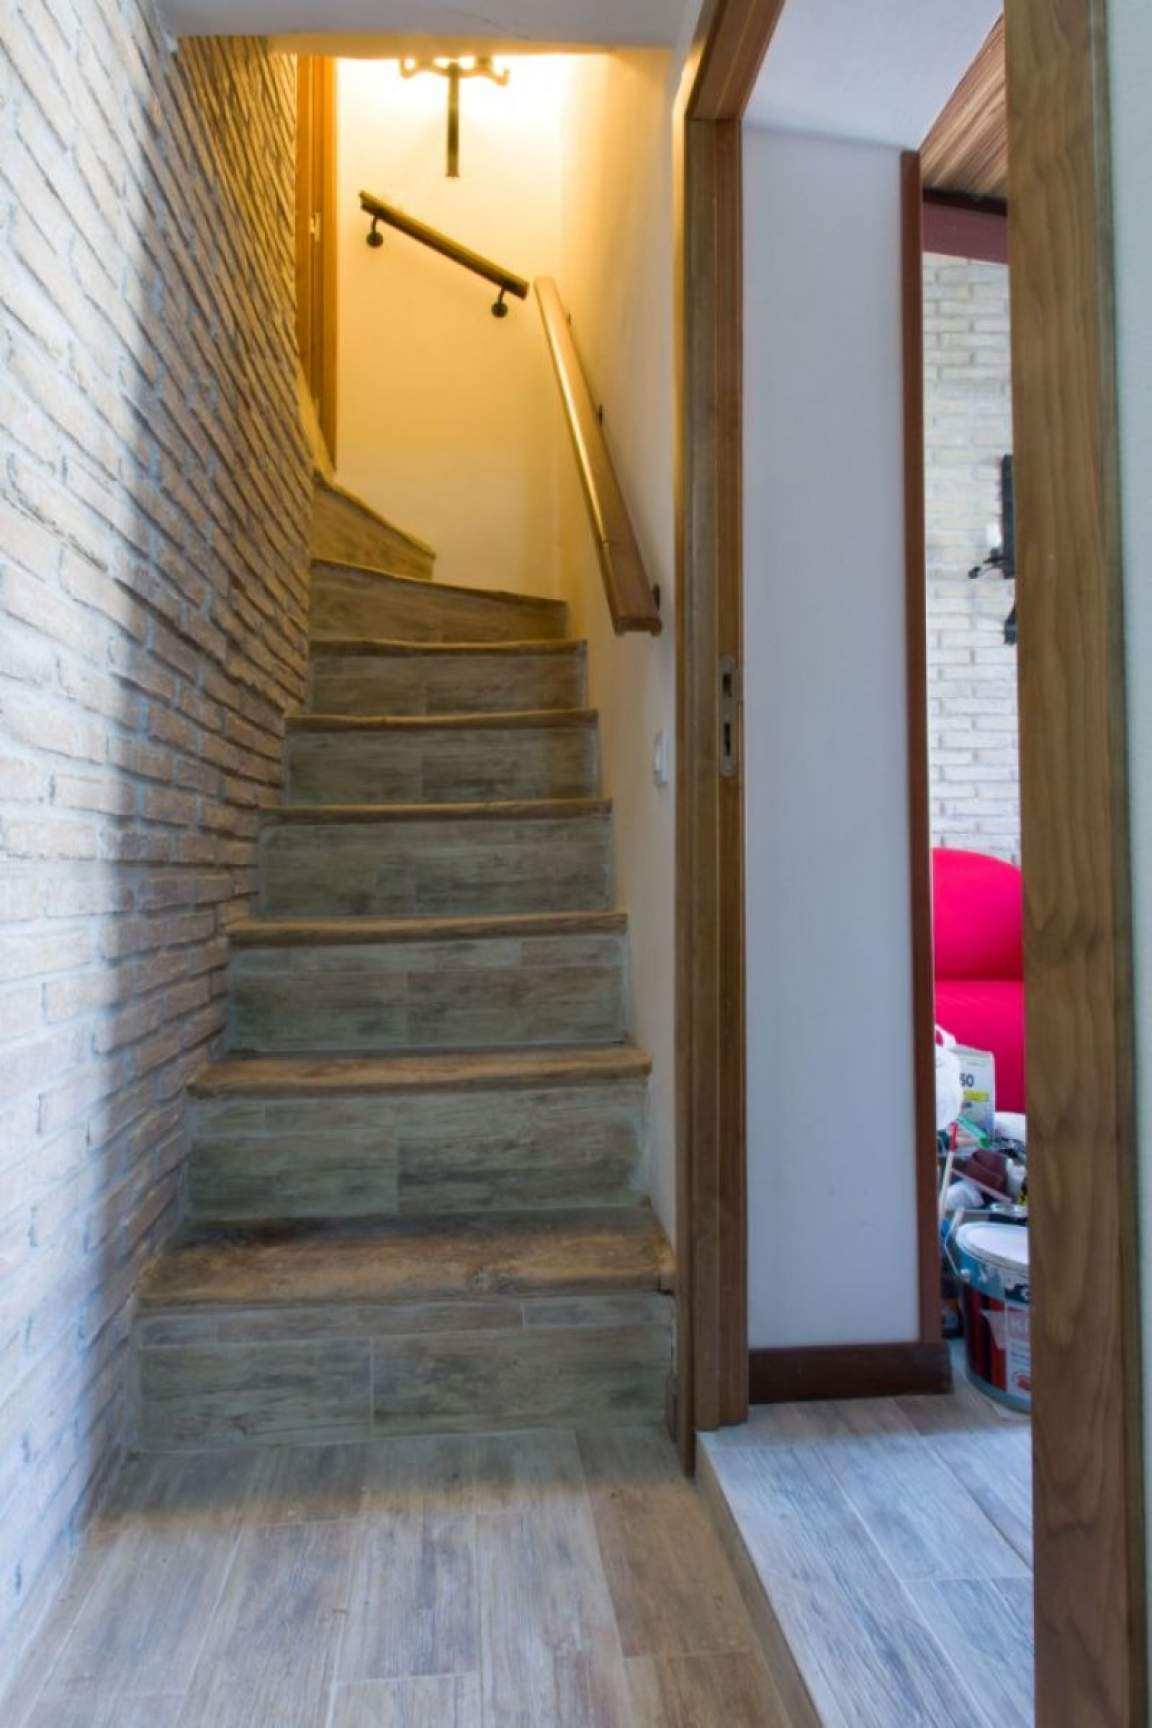 Bedroom 2 stairs